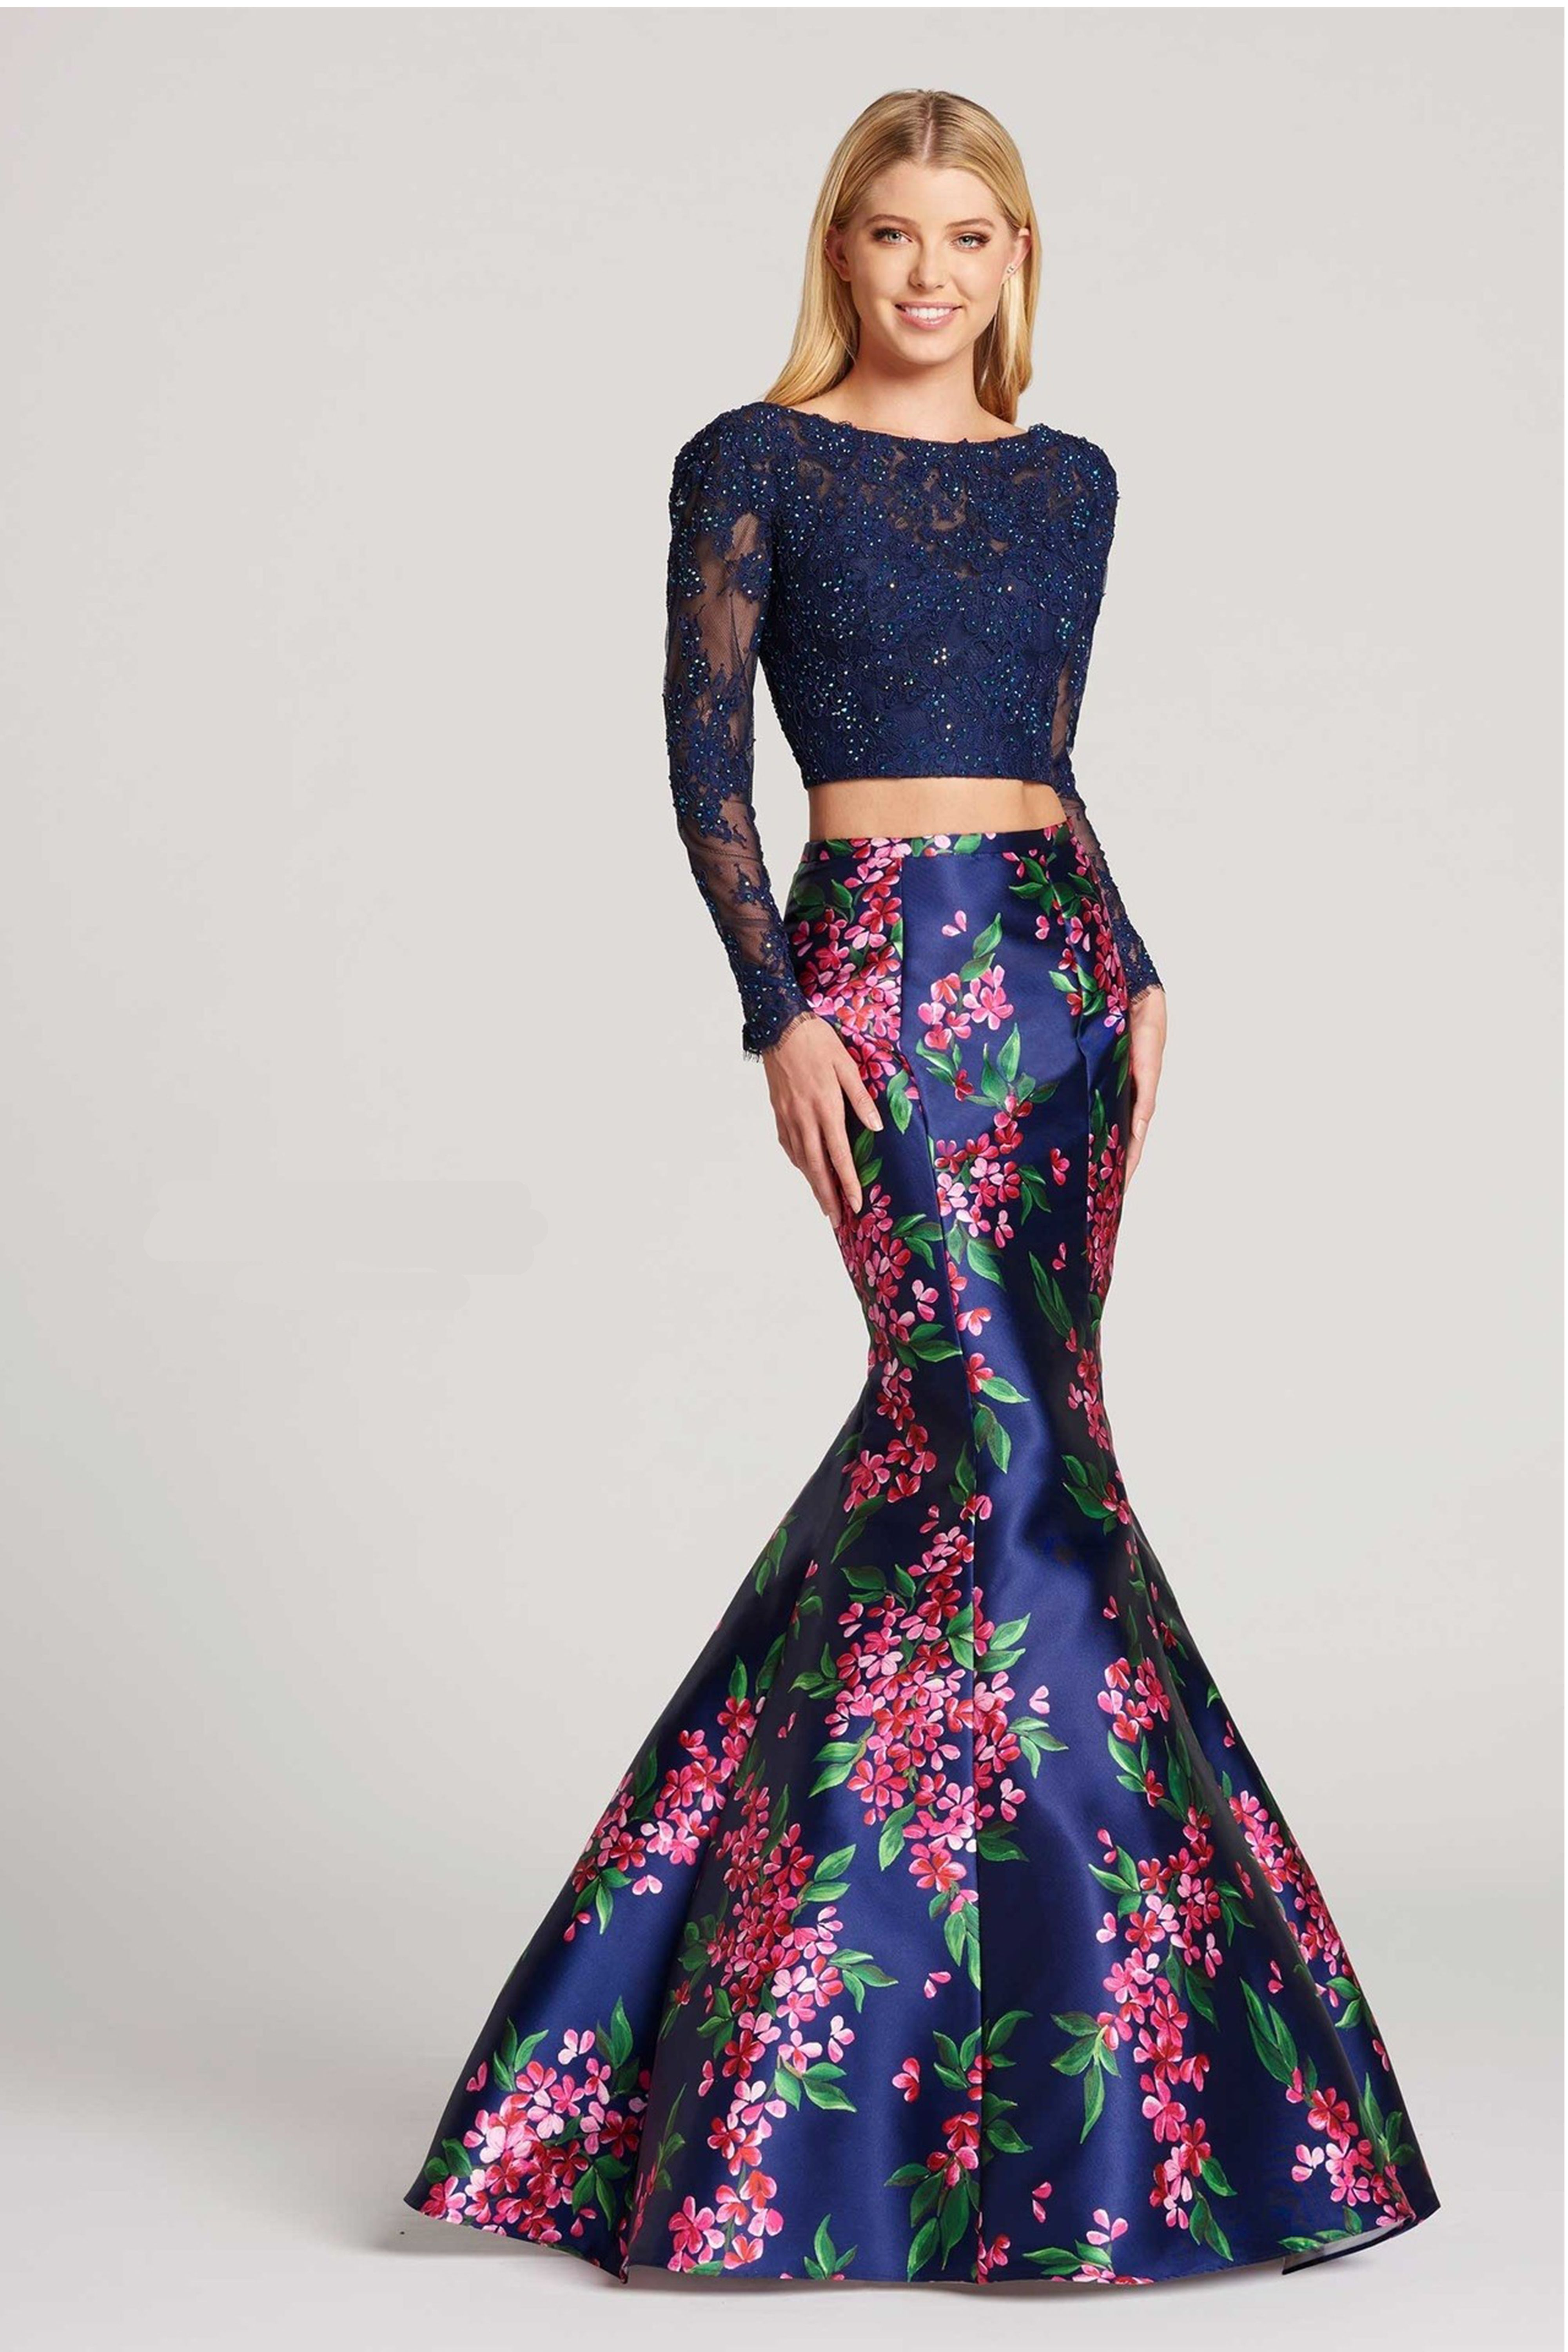 e163c8866eb2 11 Most Elegant Long Sleeve Prom Dresses of 2018 for a Modest Look